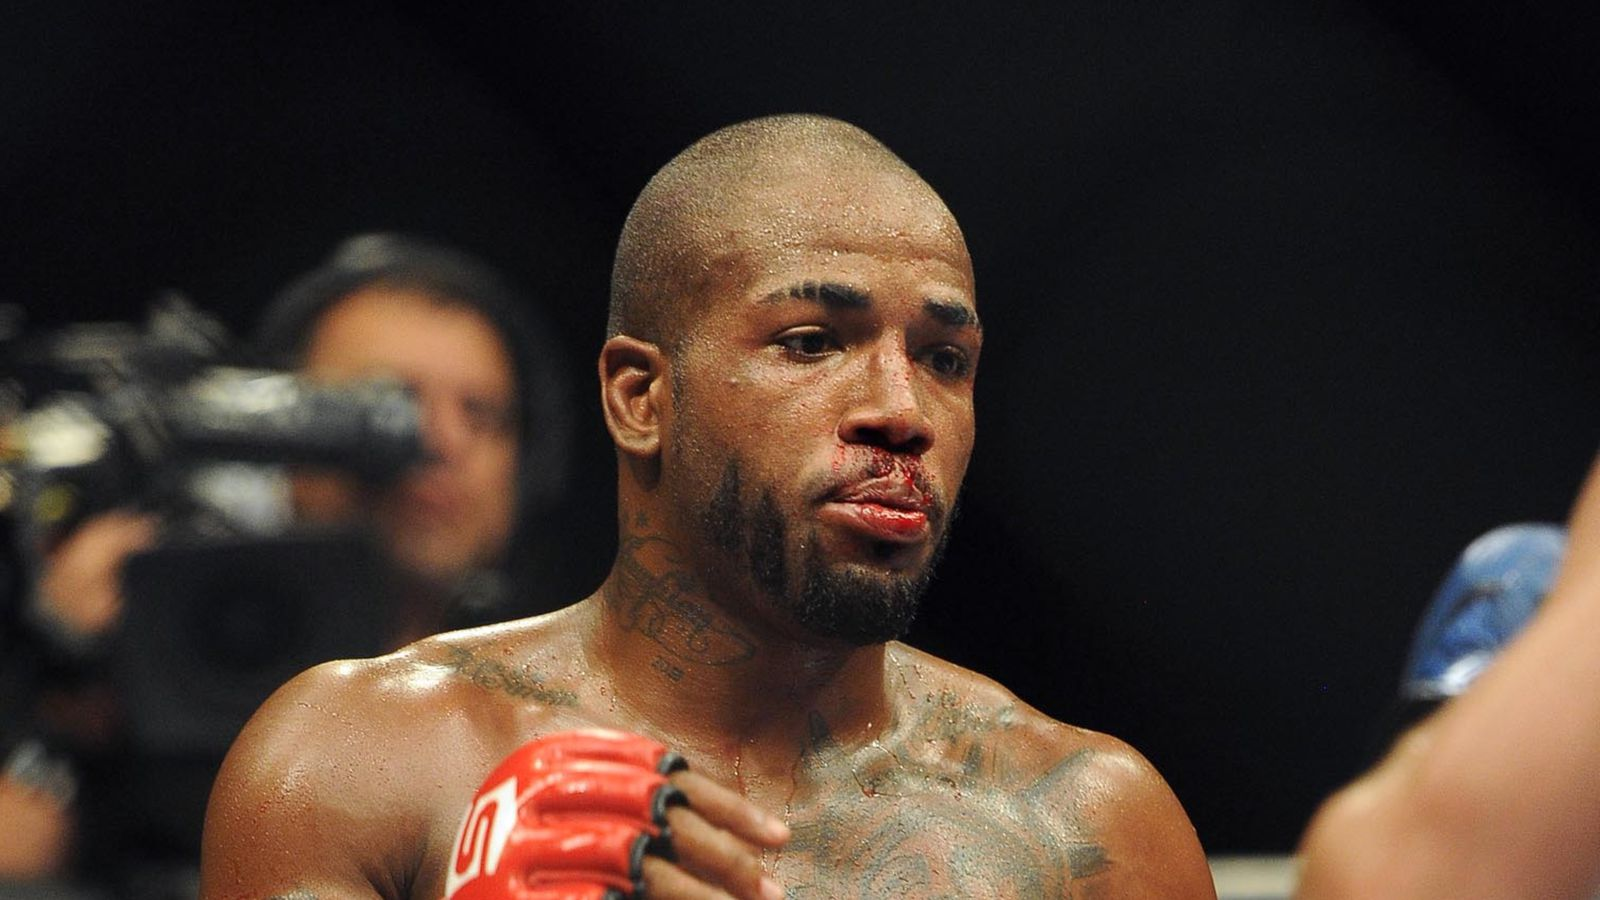 UFC 156 results: Bobby Green submits Jacob Volkmann late